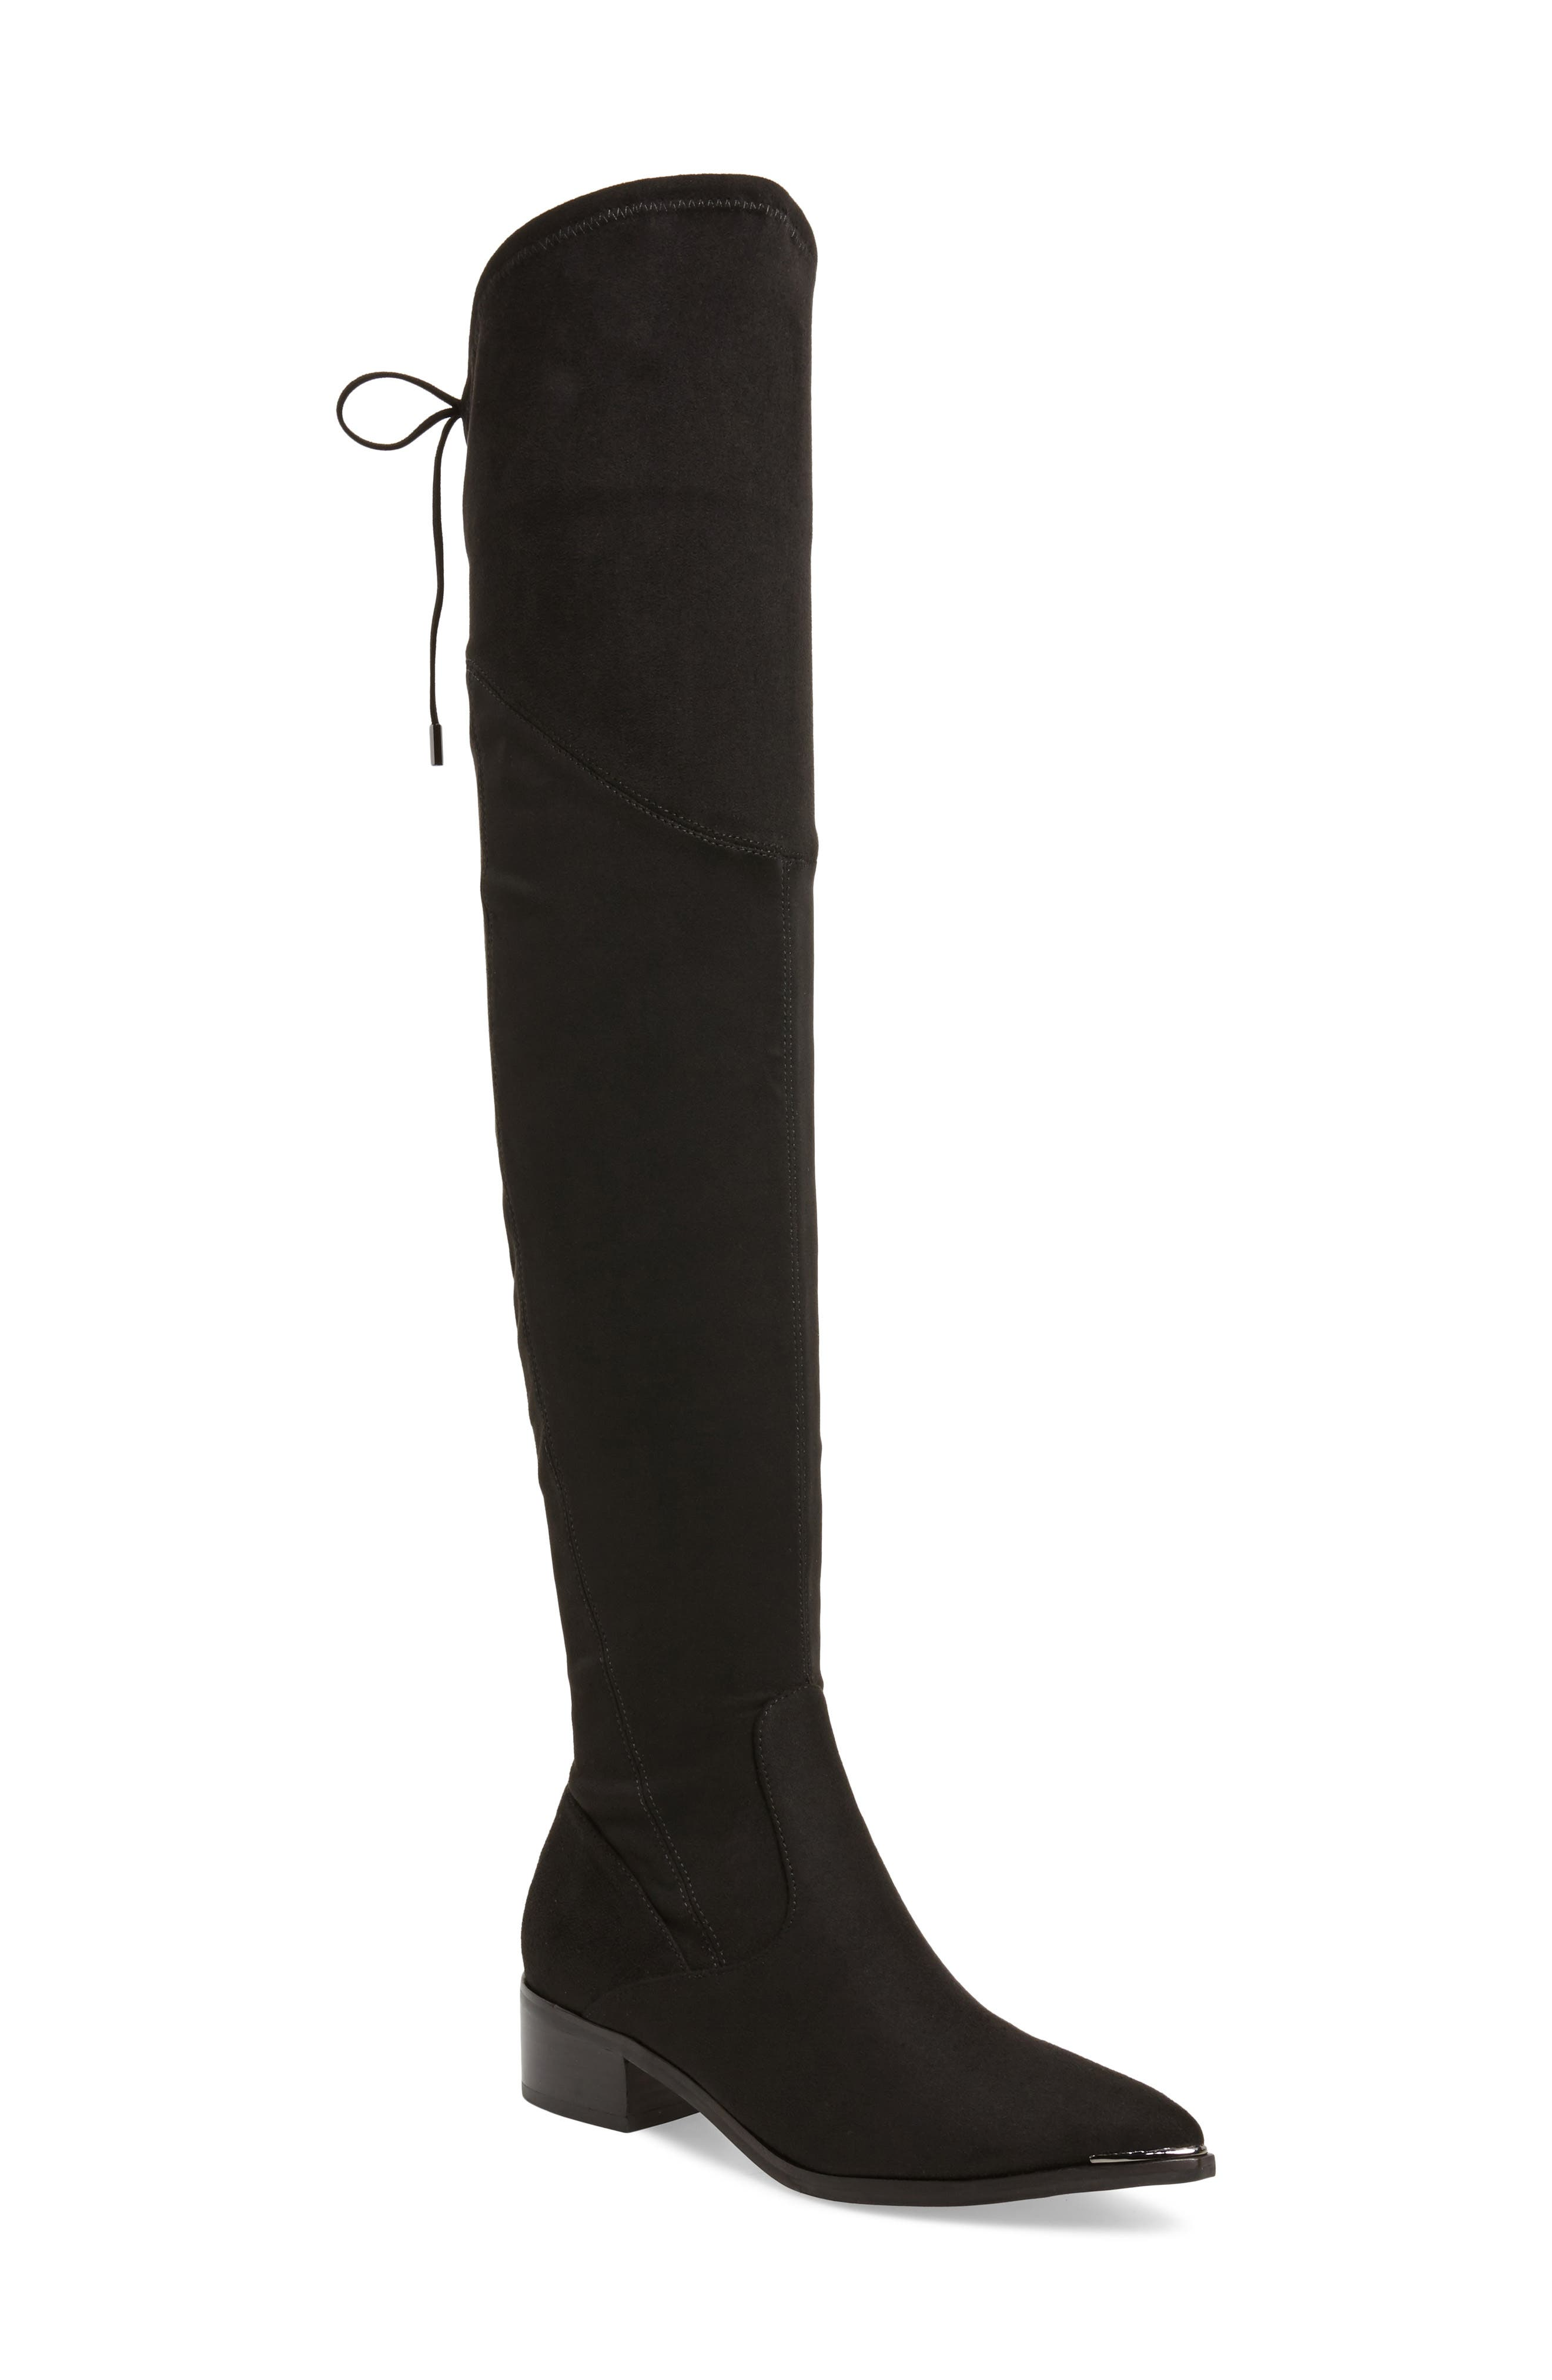 Yuna Over the Knee Boot,                         Main,                         color, BLACK FAUX SUEDE